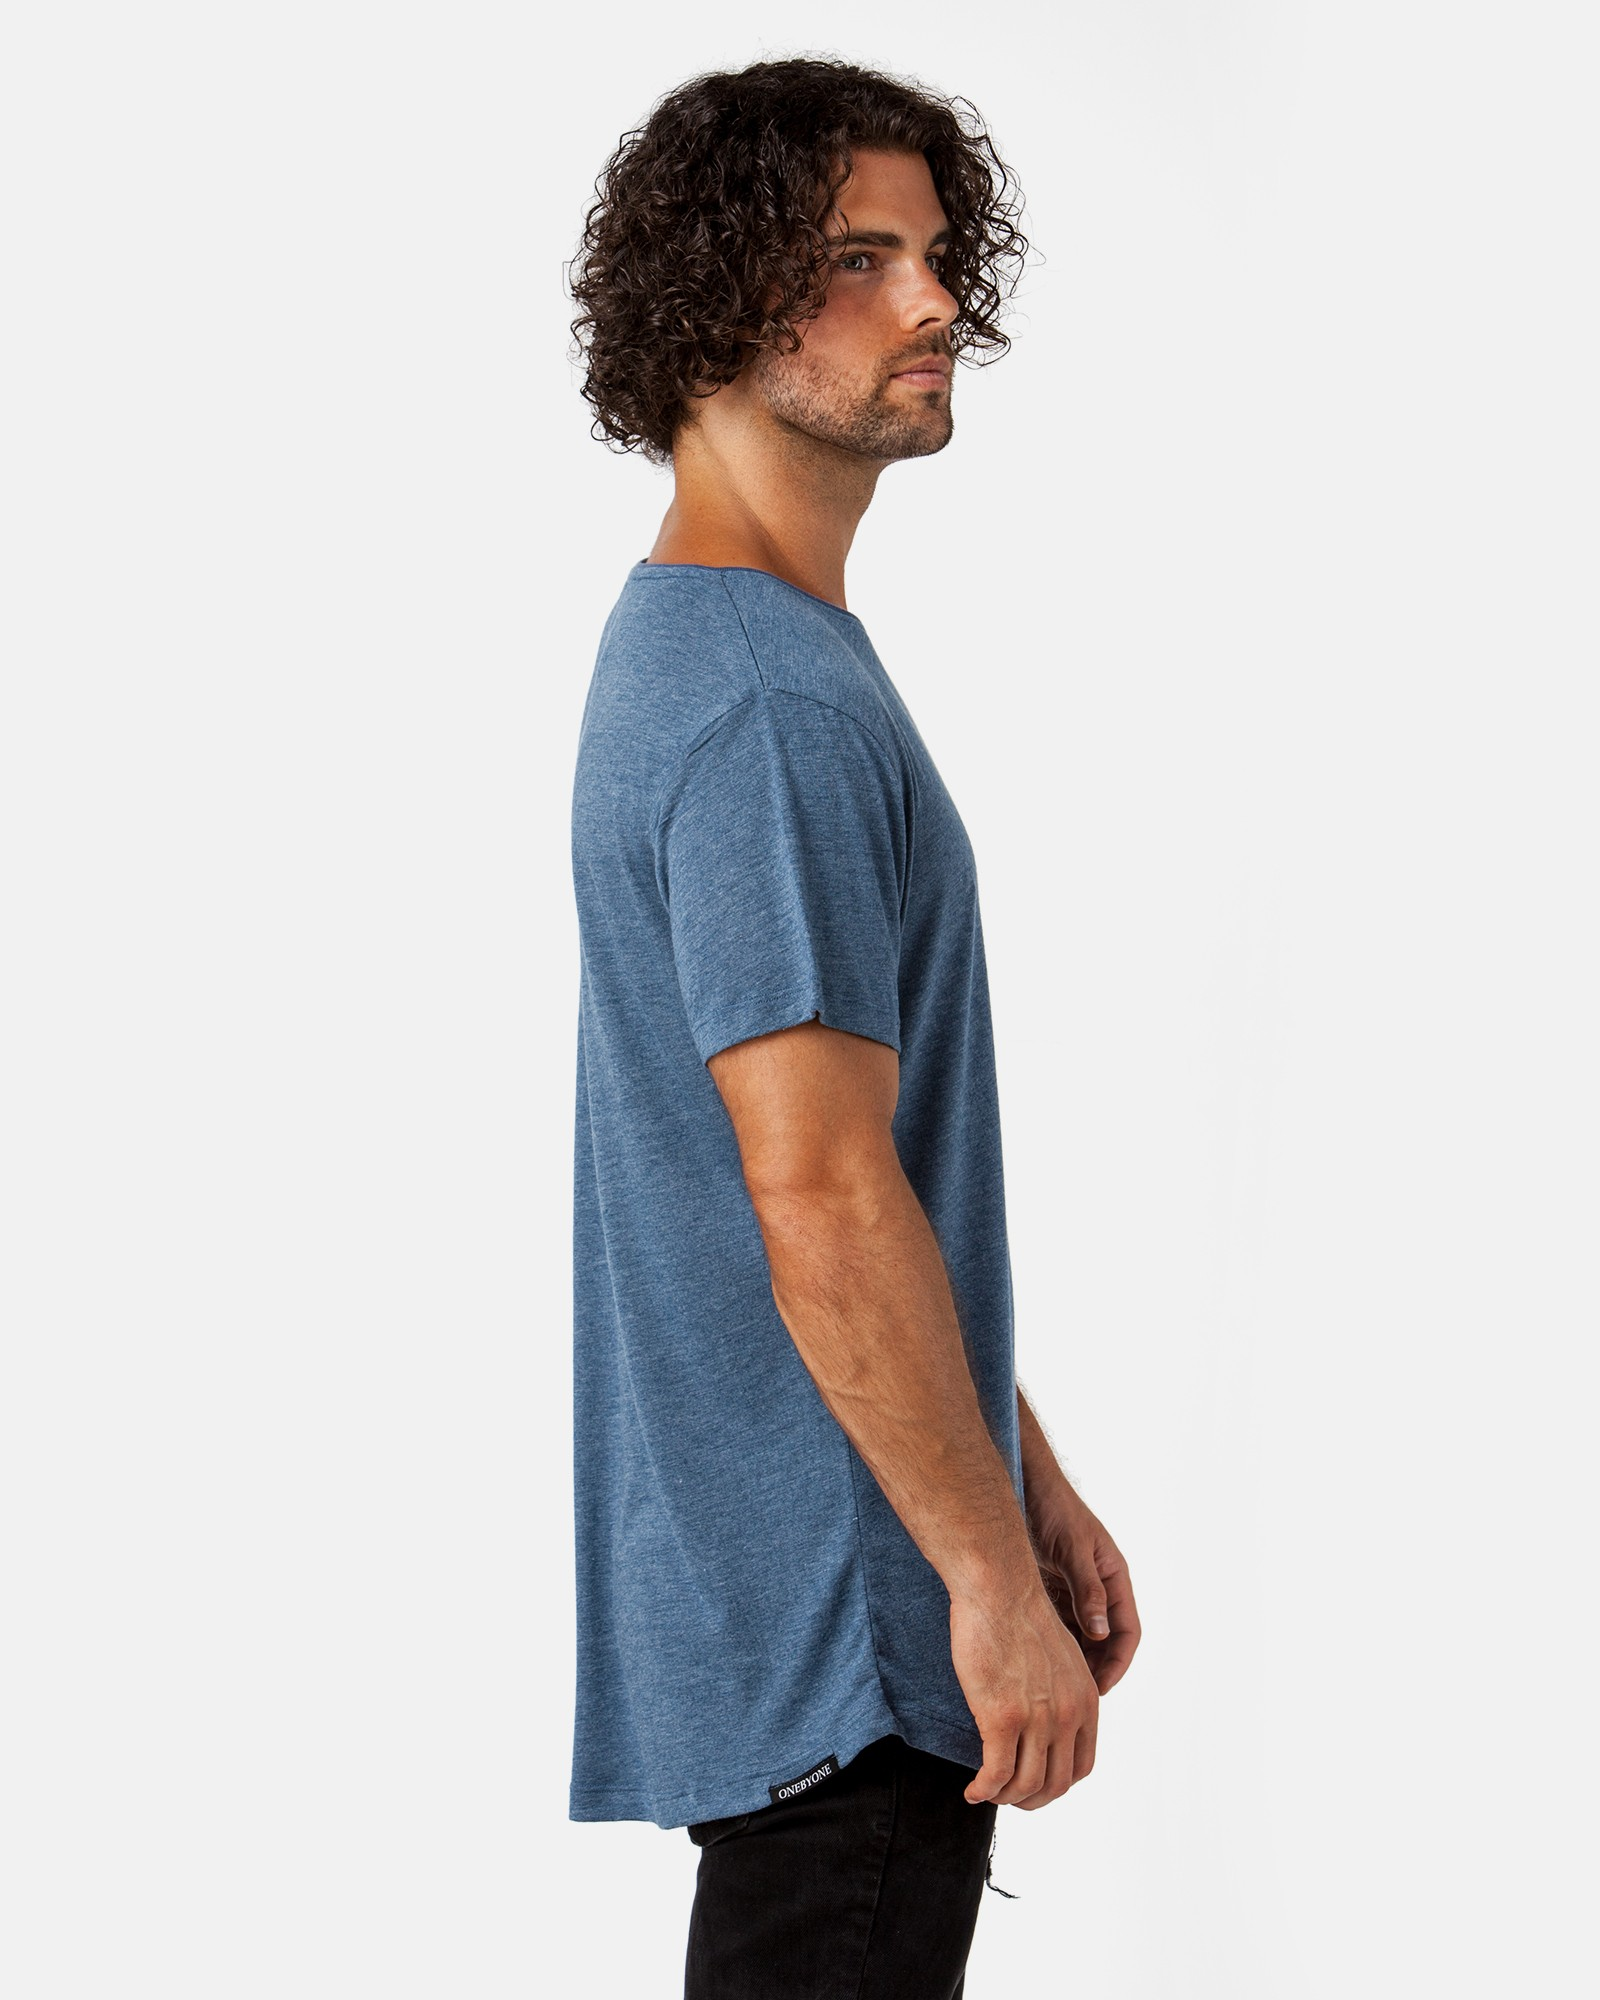 CLASSIC MARBLE BLUE TEE